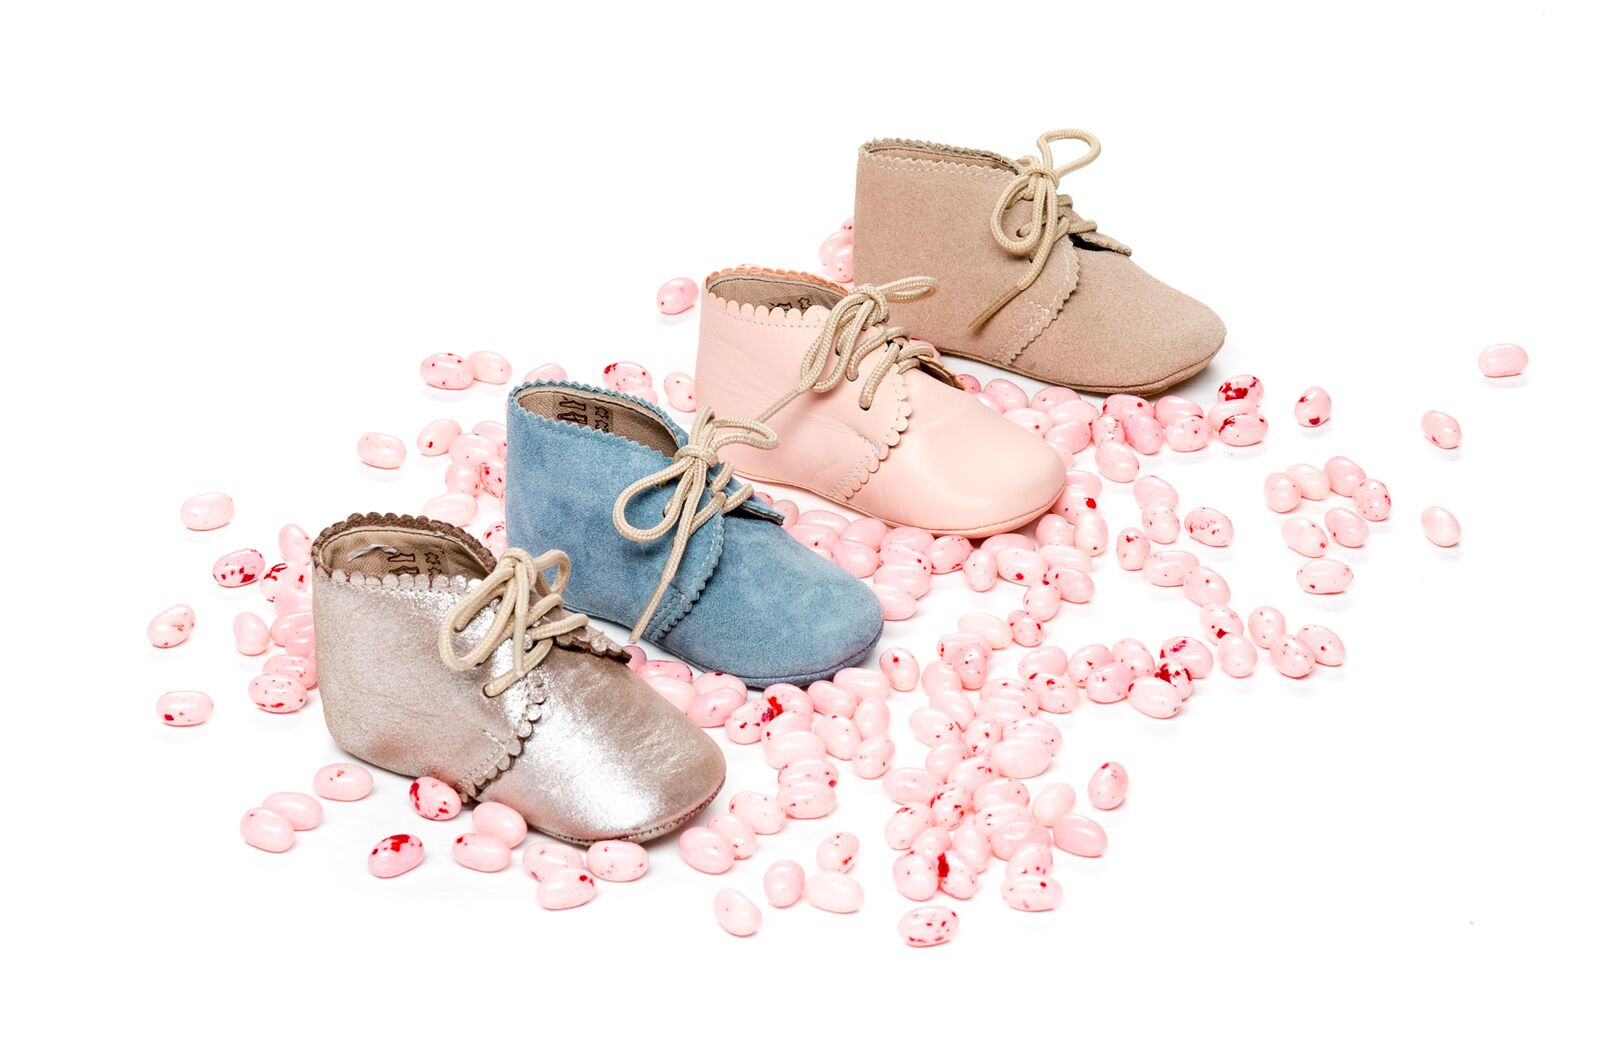 Our baby shoes